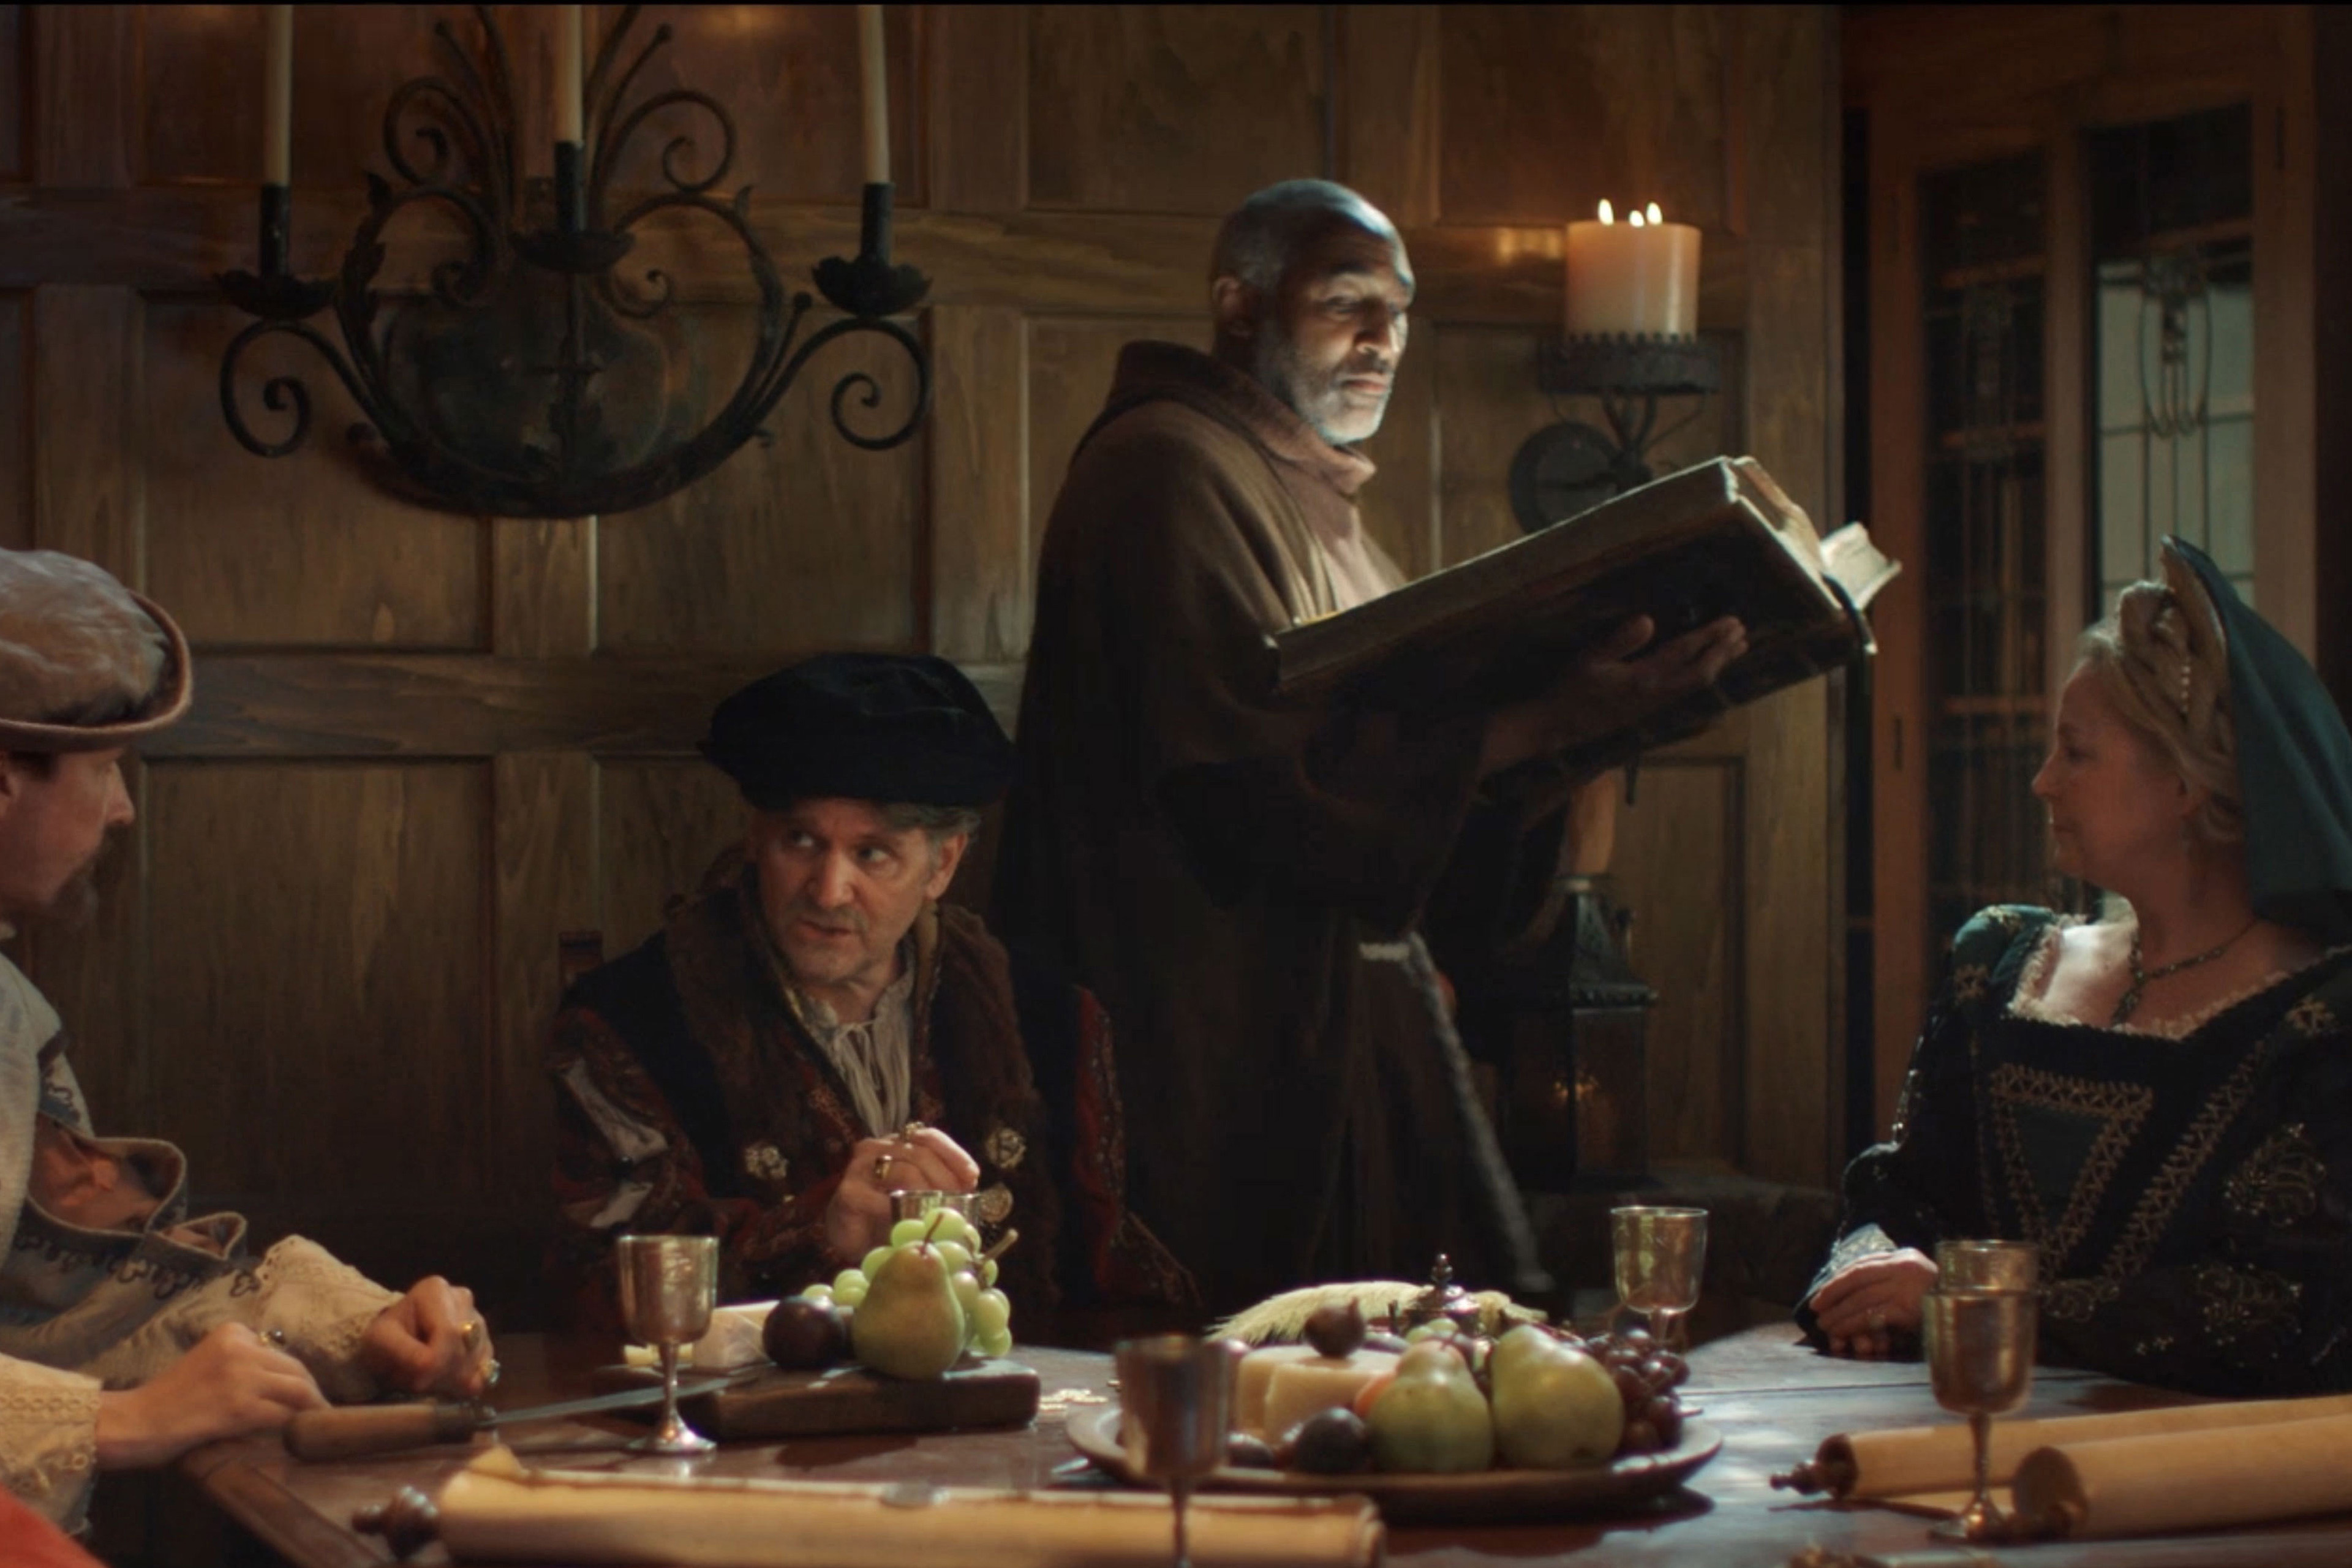 Renaissance era people sitting around a table reading from a book